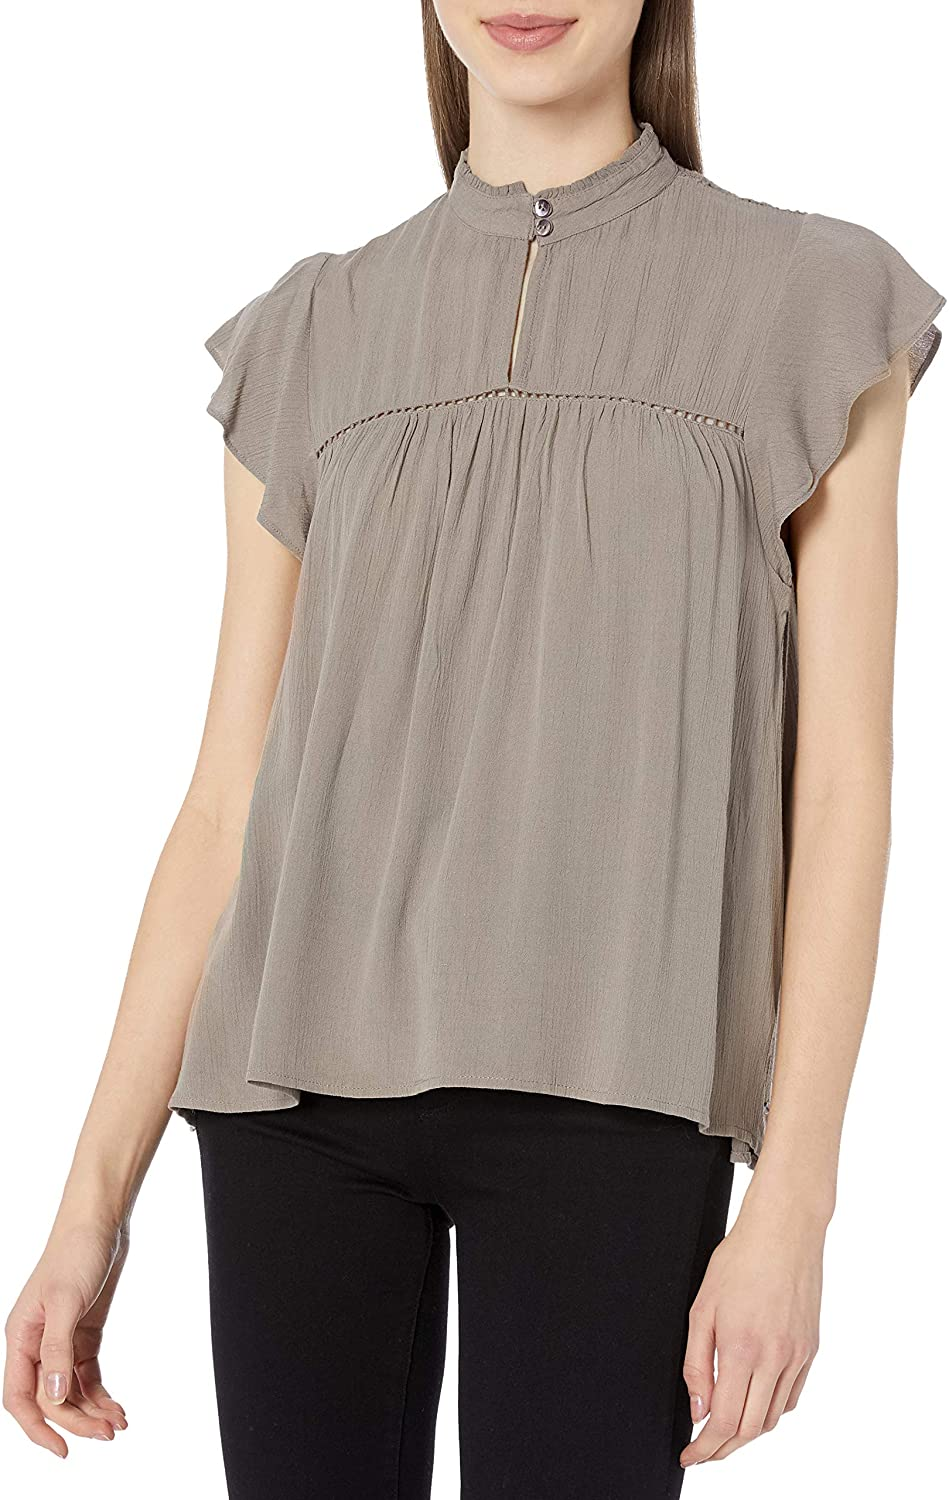 O'NEILL Junior's Chandler High Neck Top, (TAU) Taupe